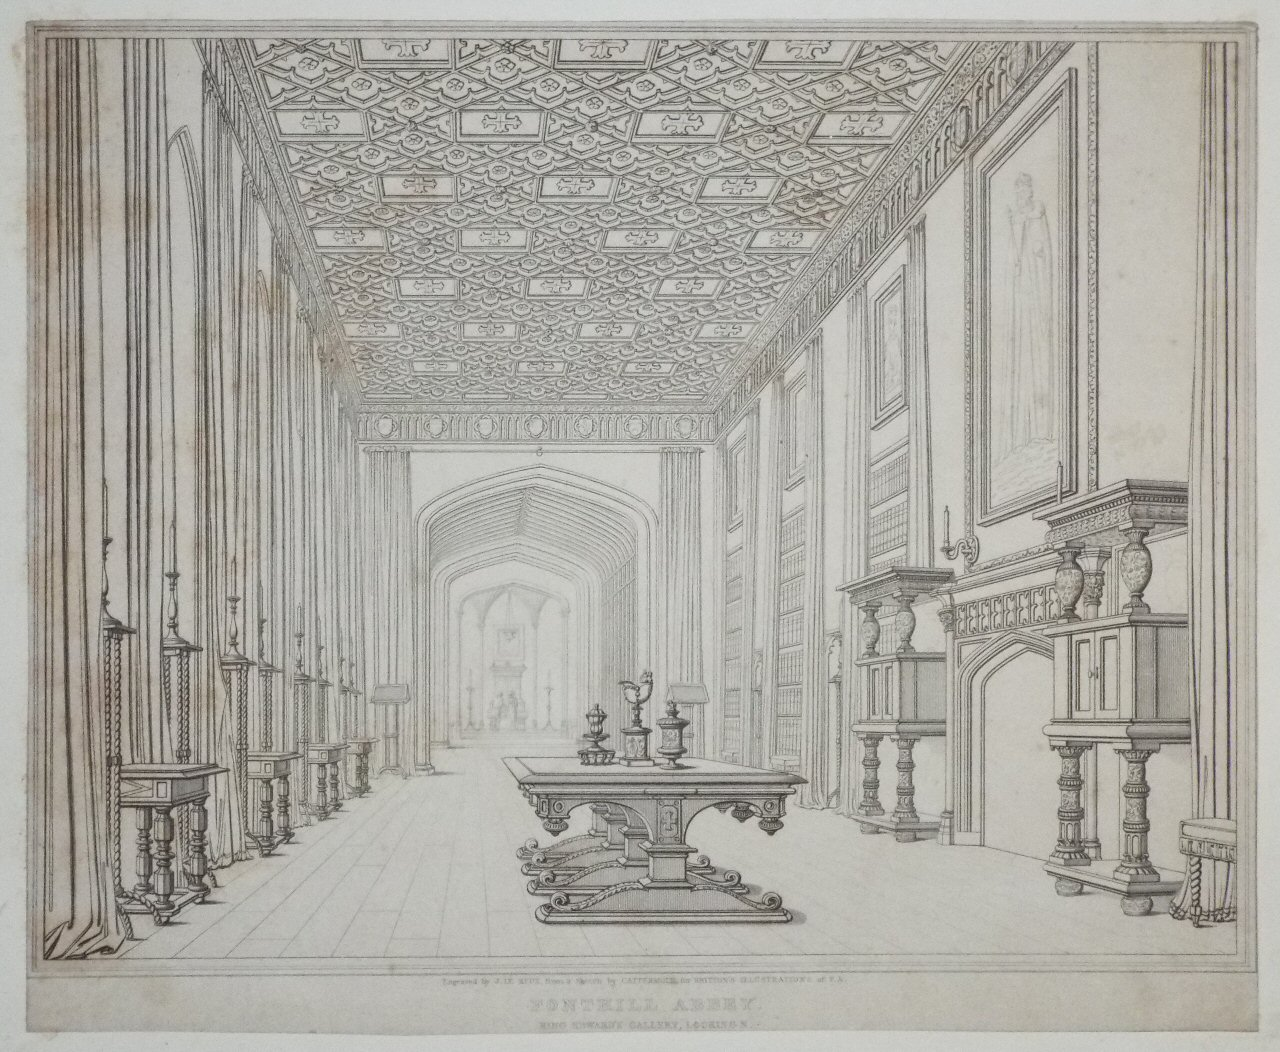 Print - Pl.08. Fonthill Abey, King Edward's Gallery, Looking N. - Le